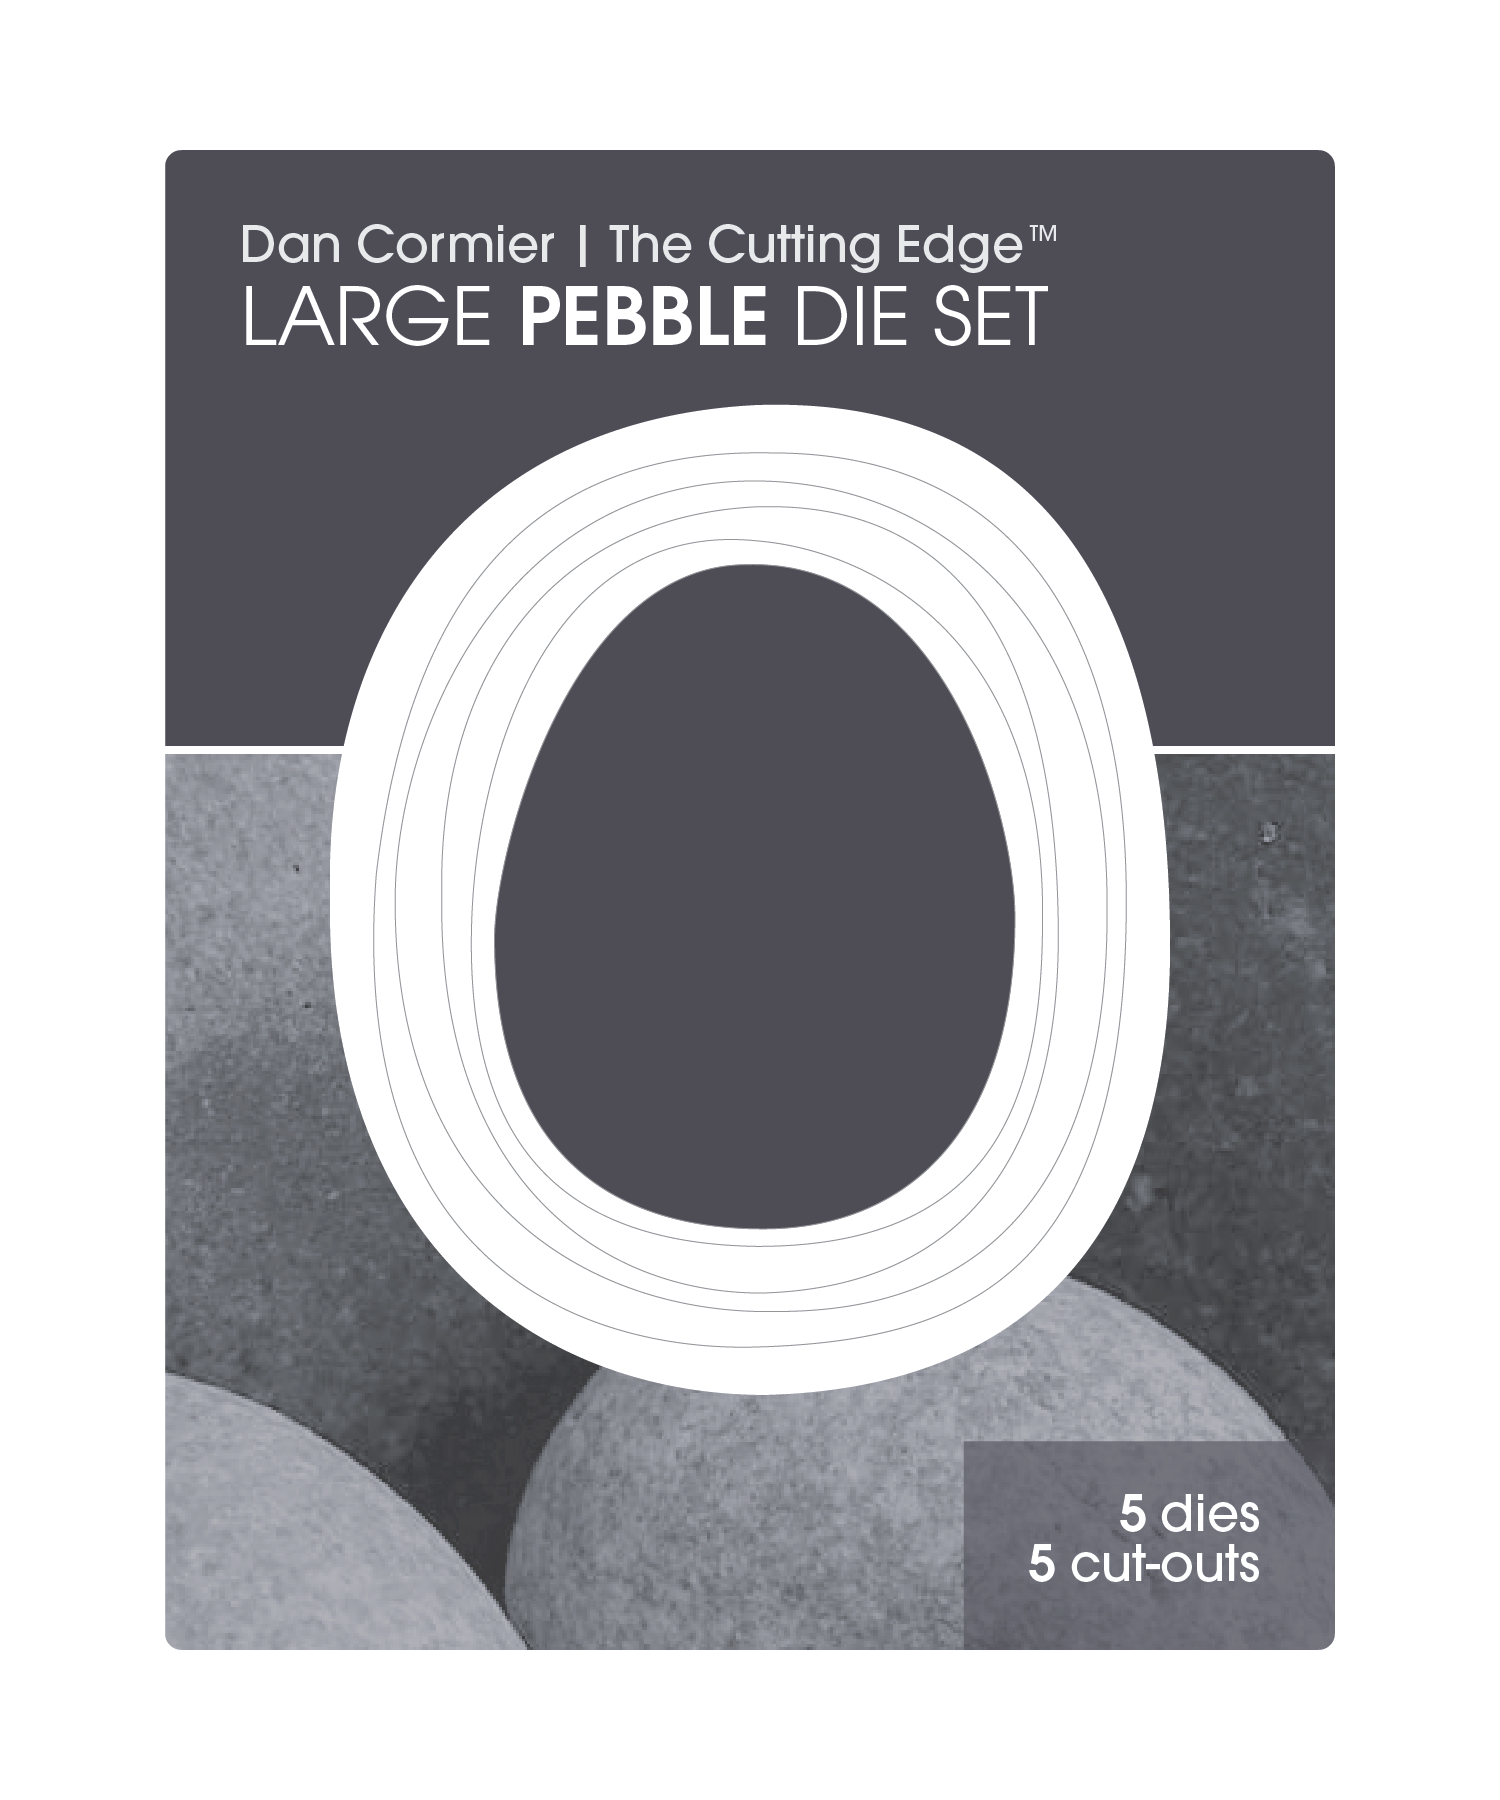 Large PEBBLE Cover.png